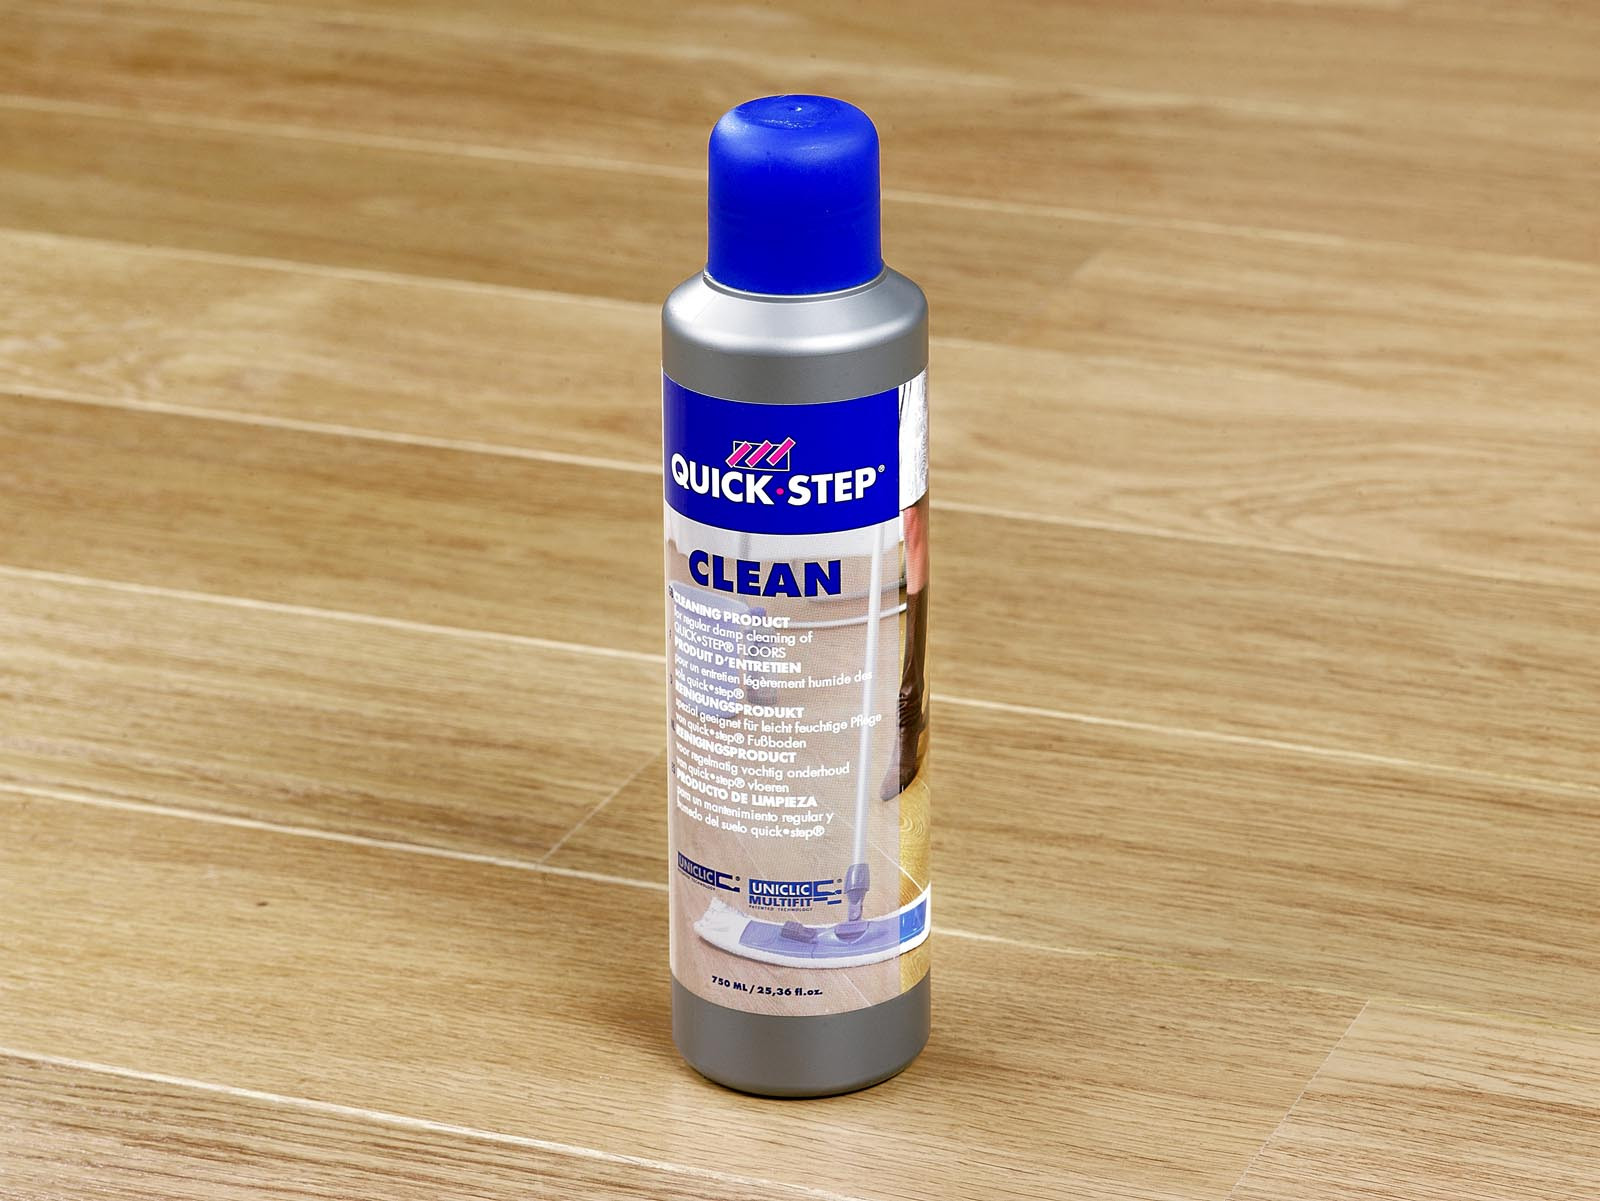 Quick Step Puhdistusaine Clean, 750ml  Netrauta fi